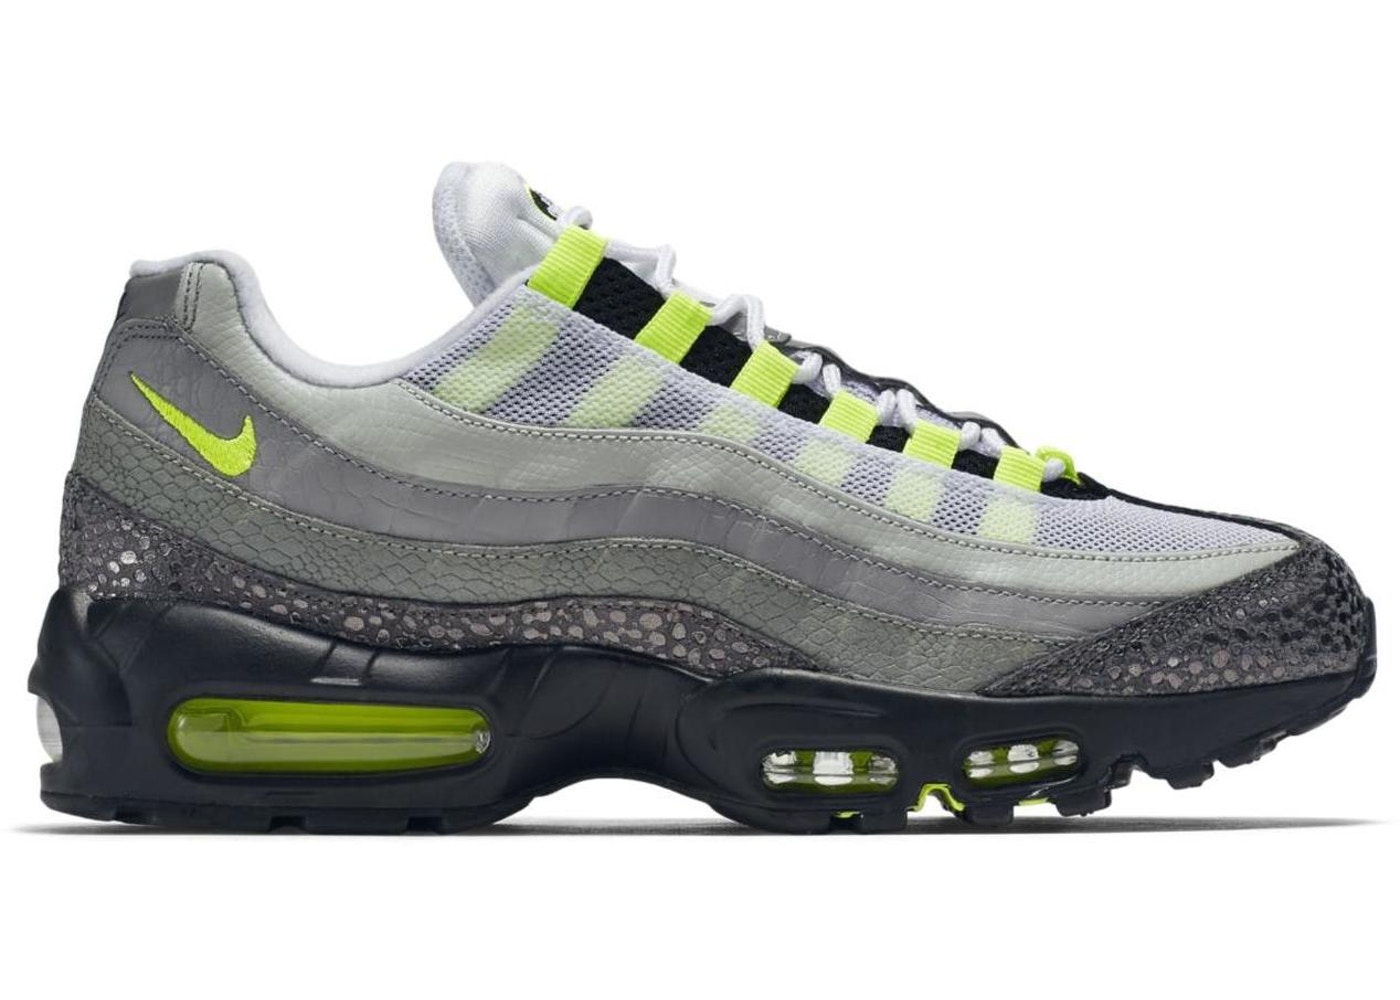 sneakers for cheap 094c8 35857 Nike Air Max 95 Shoes - Average Sale Price